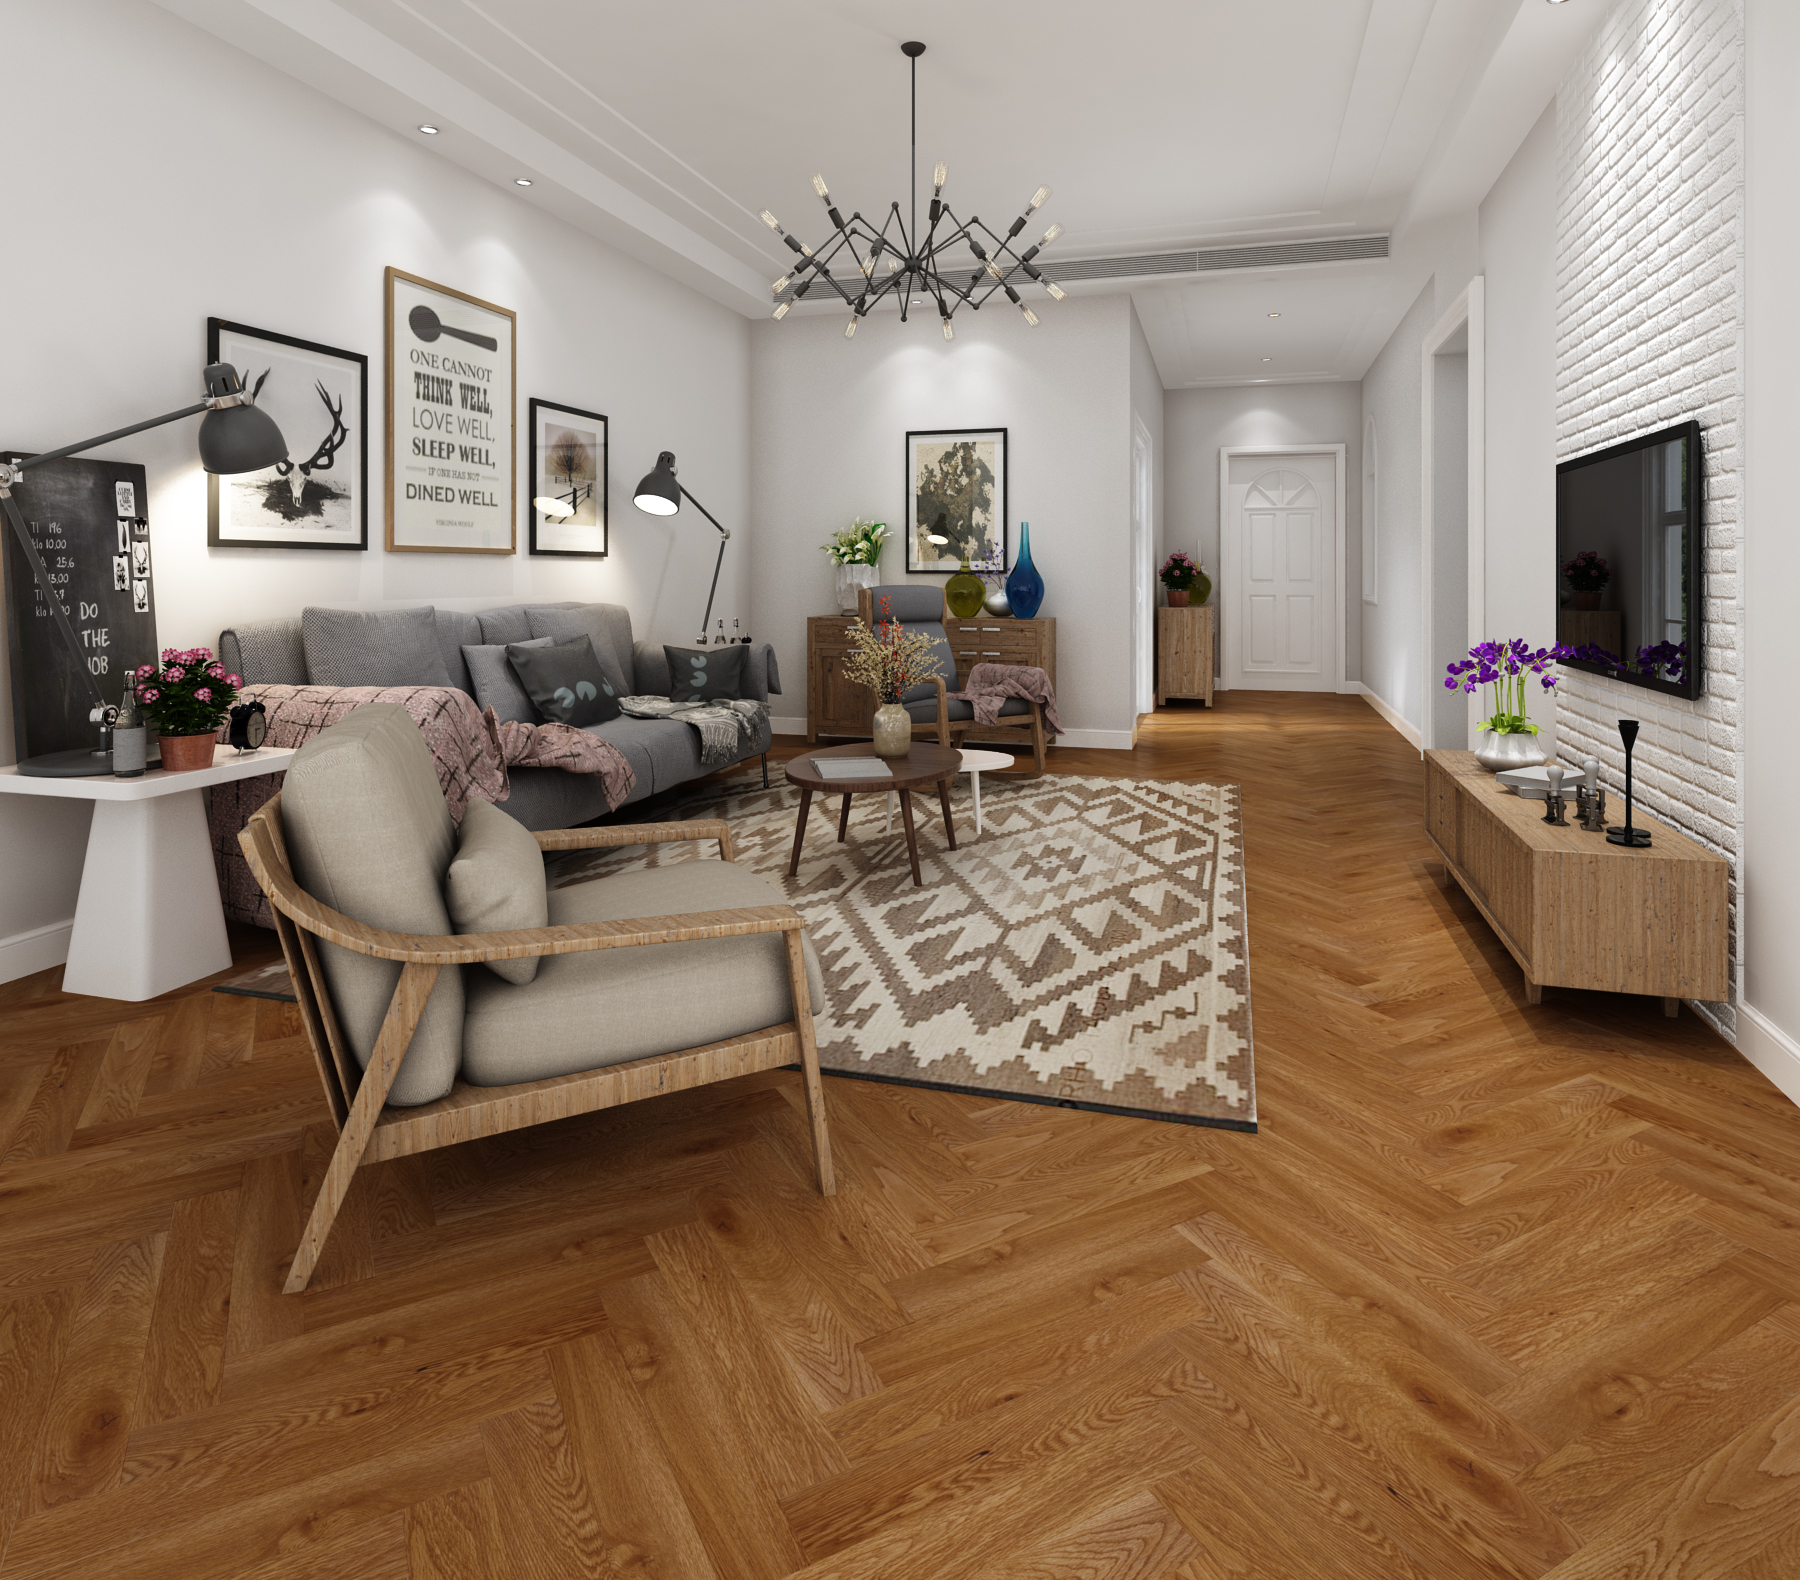 FinFloor Authentic Herringbone Laminate Flooring at Carpet World Flooring Cape Town